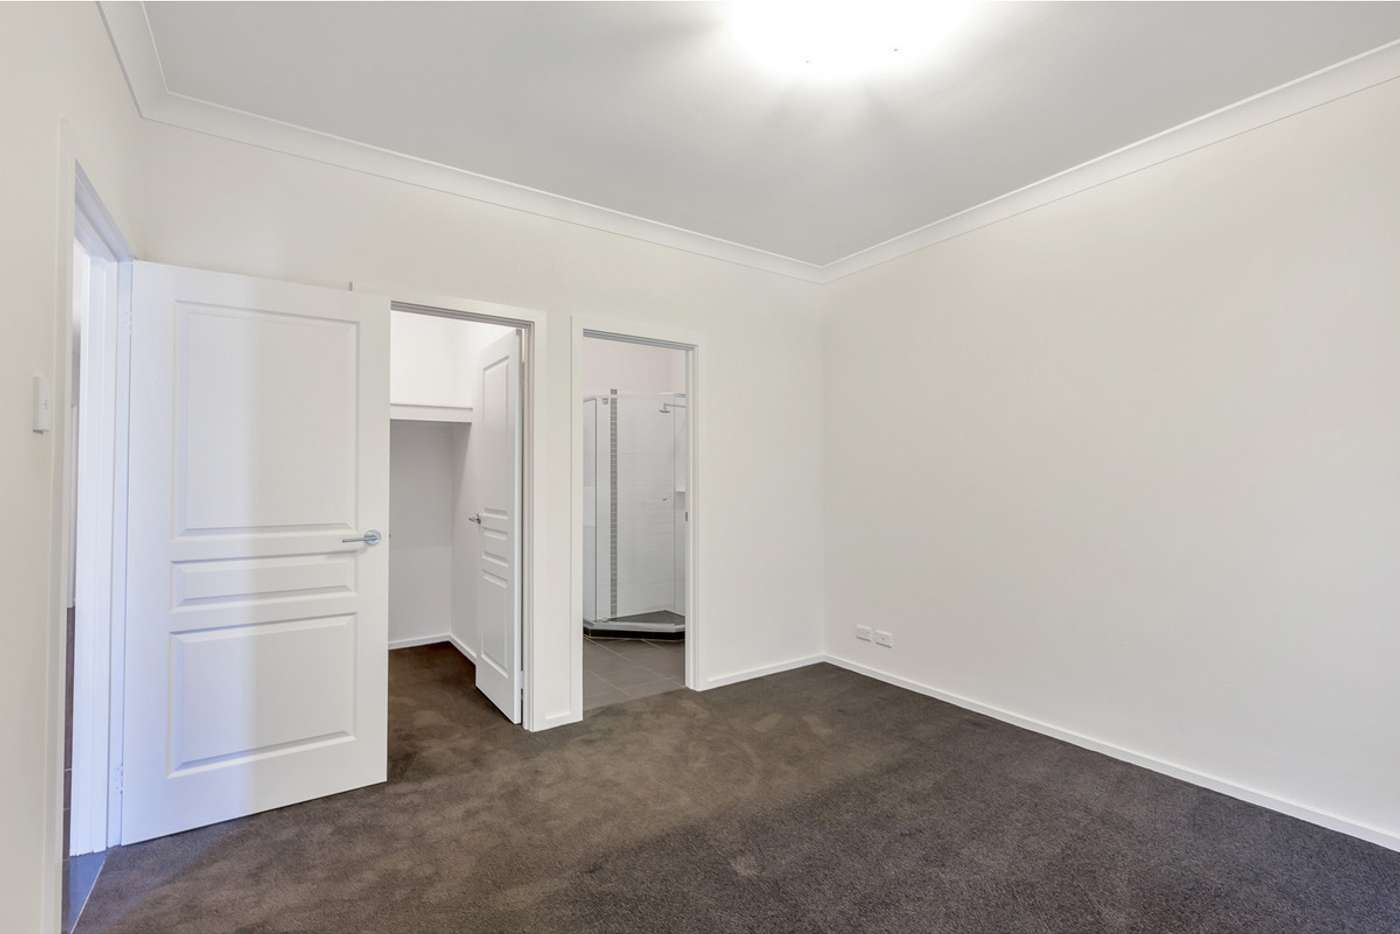 Sixth view of Homely house listing, 20A James Street, Campbelltown SA 5074